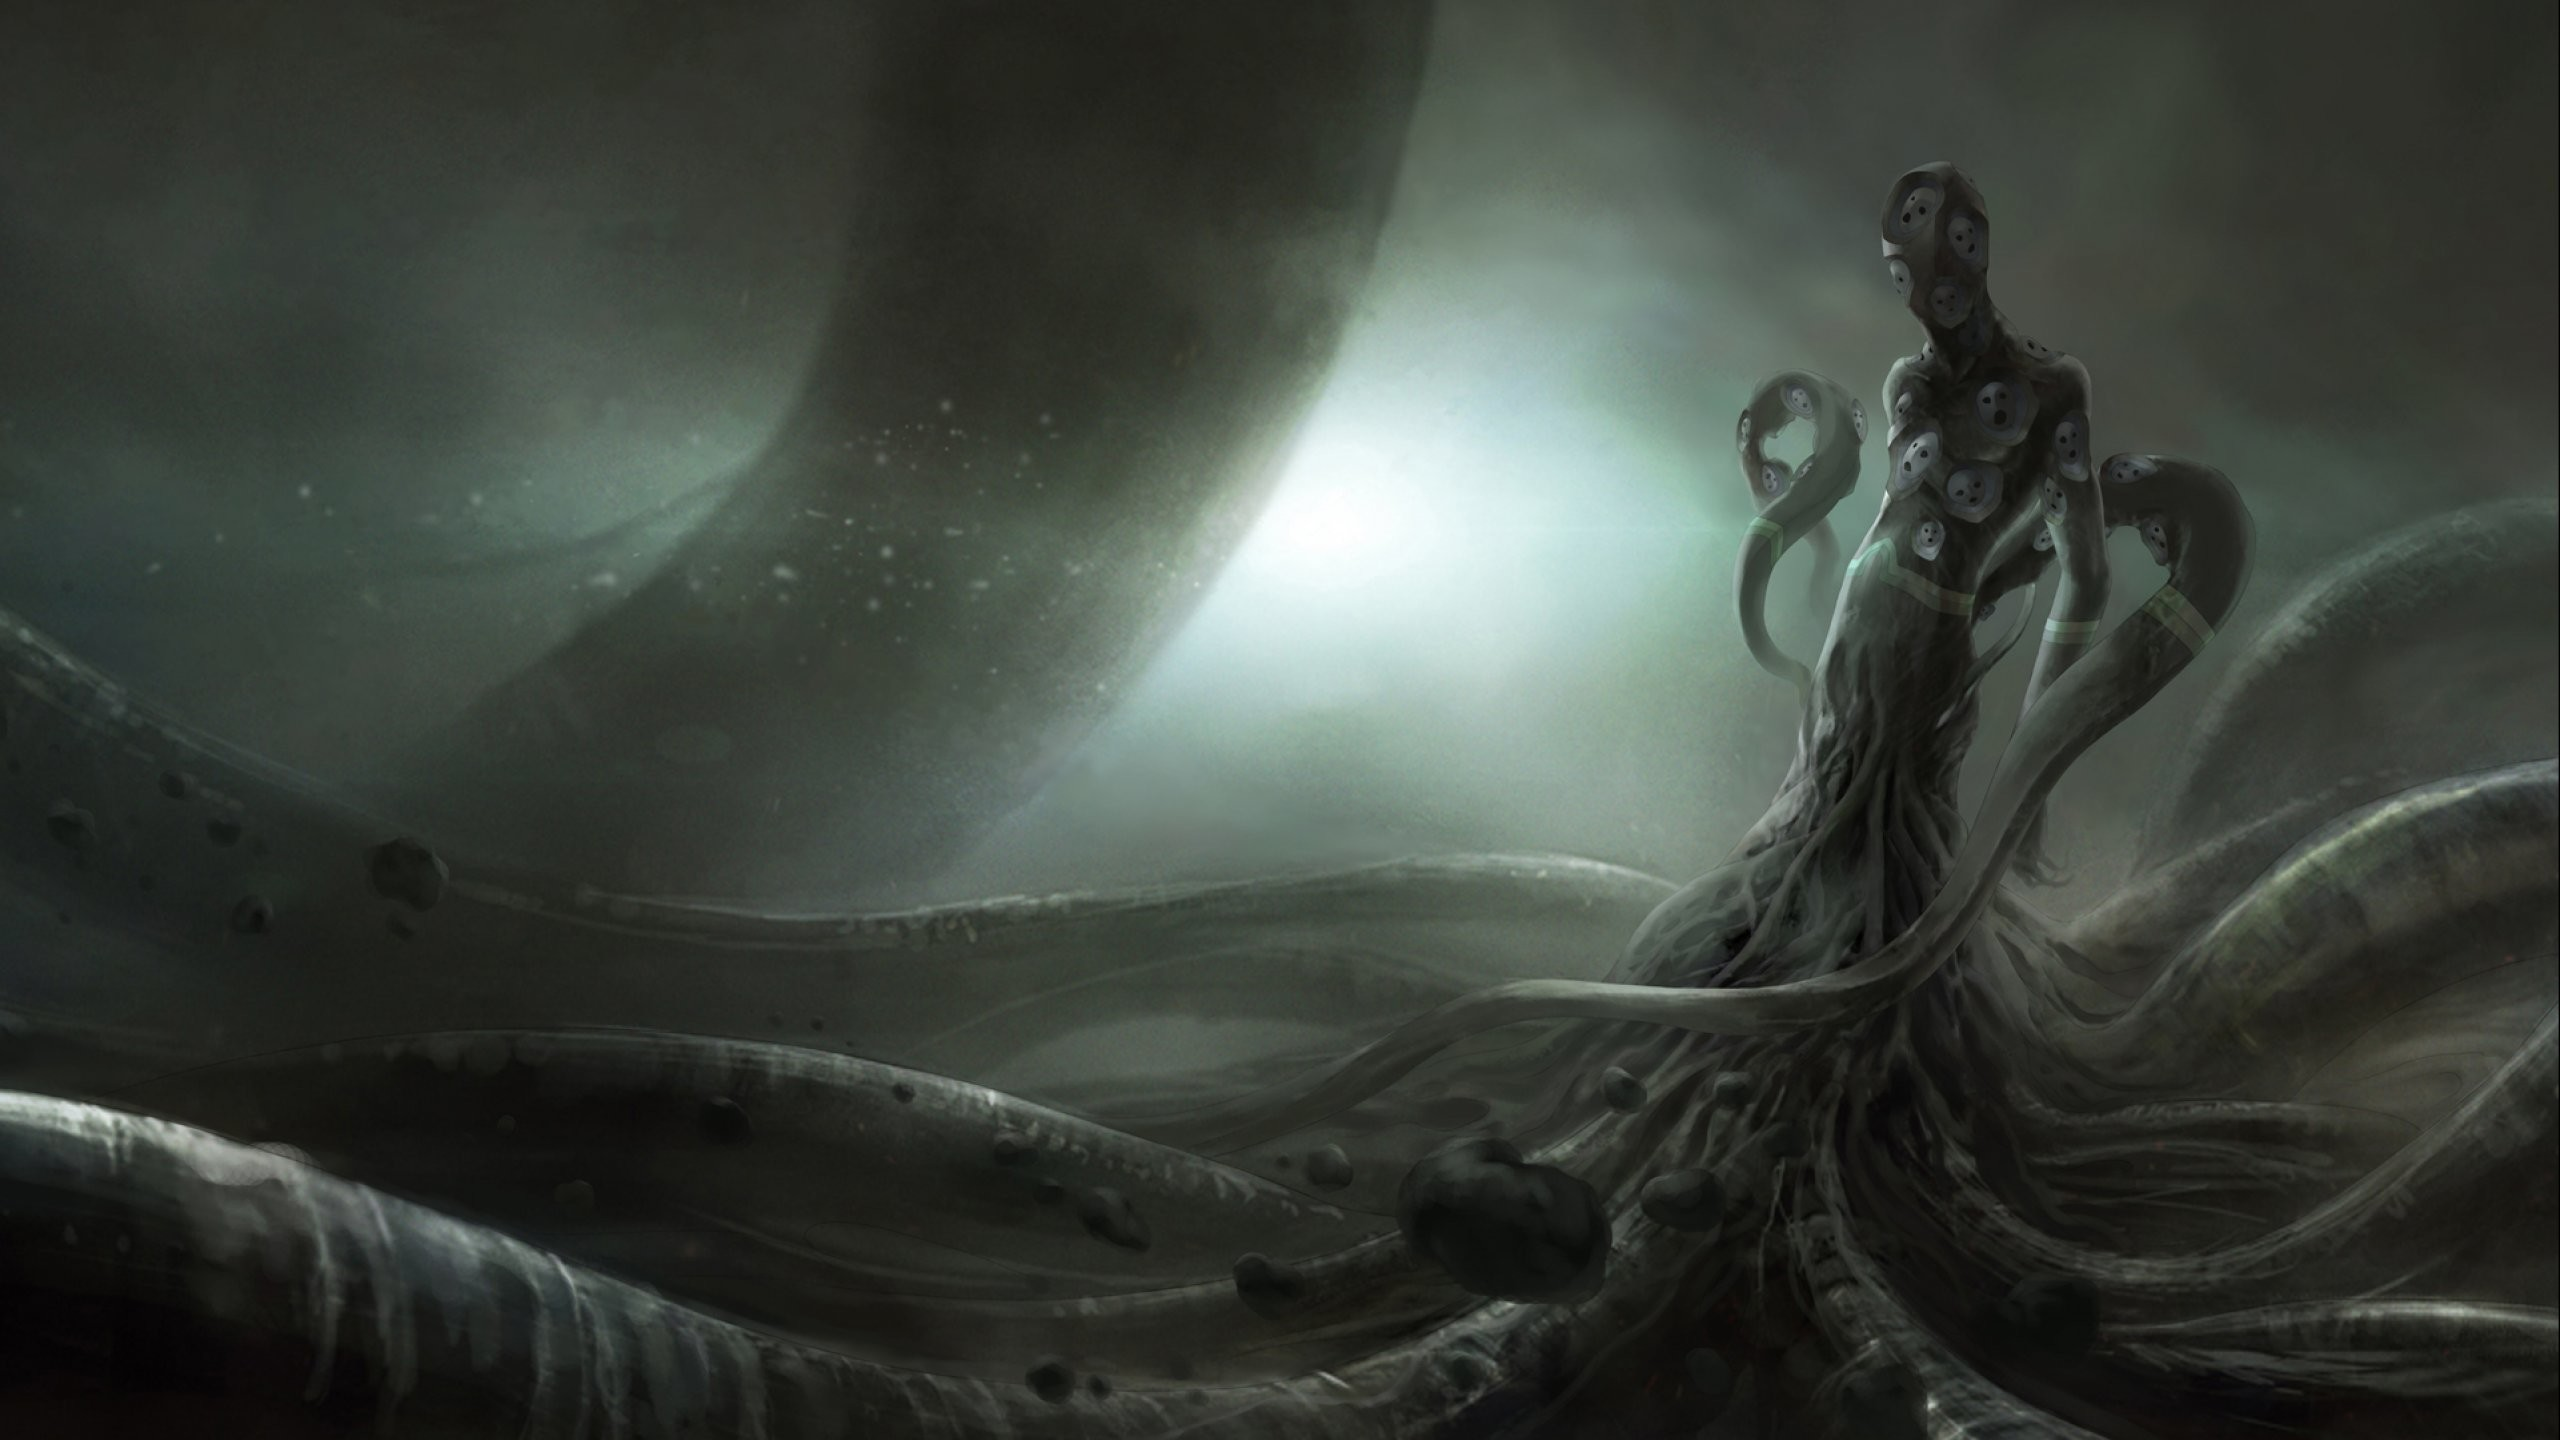 Cthulhu Art Wallpaper HD Wallpapers Download Free Images Wallpaper [1000image.com]